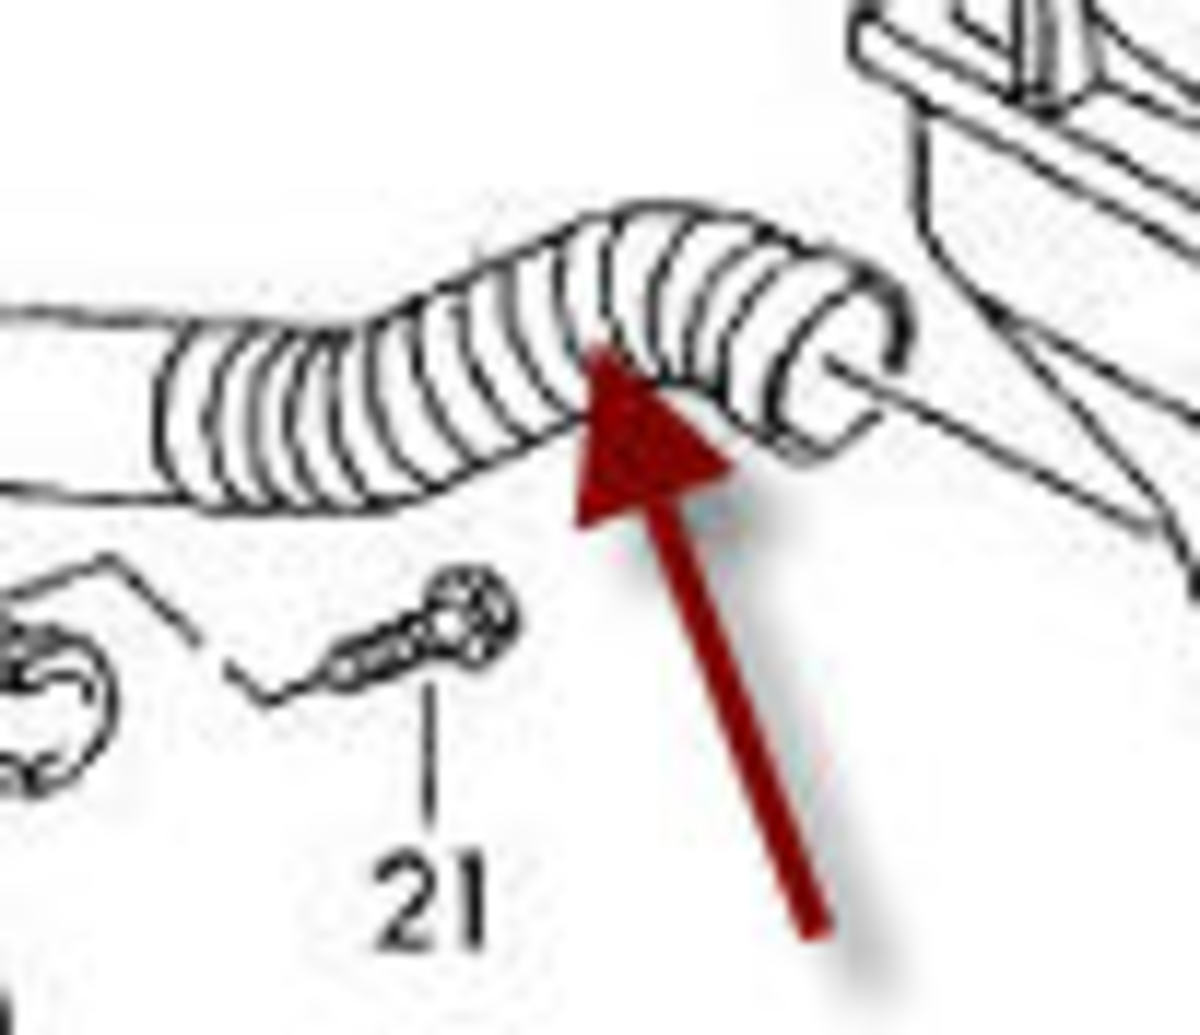 This small flex hose is a common problem or weak link and a tiny hole will cause the code.